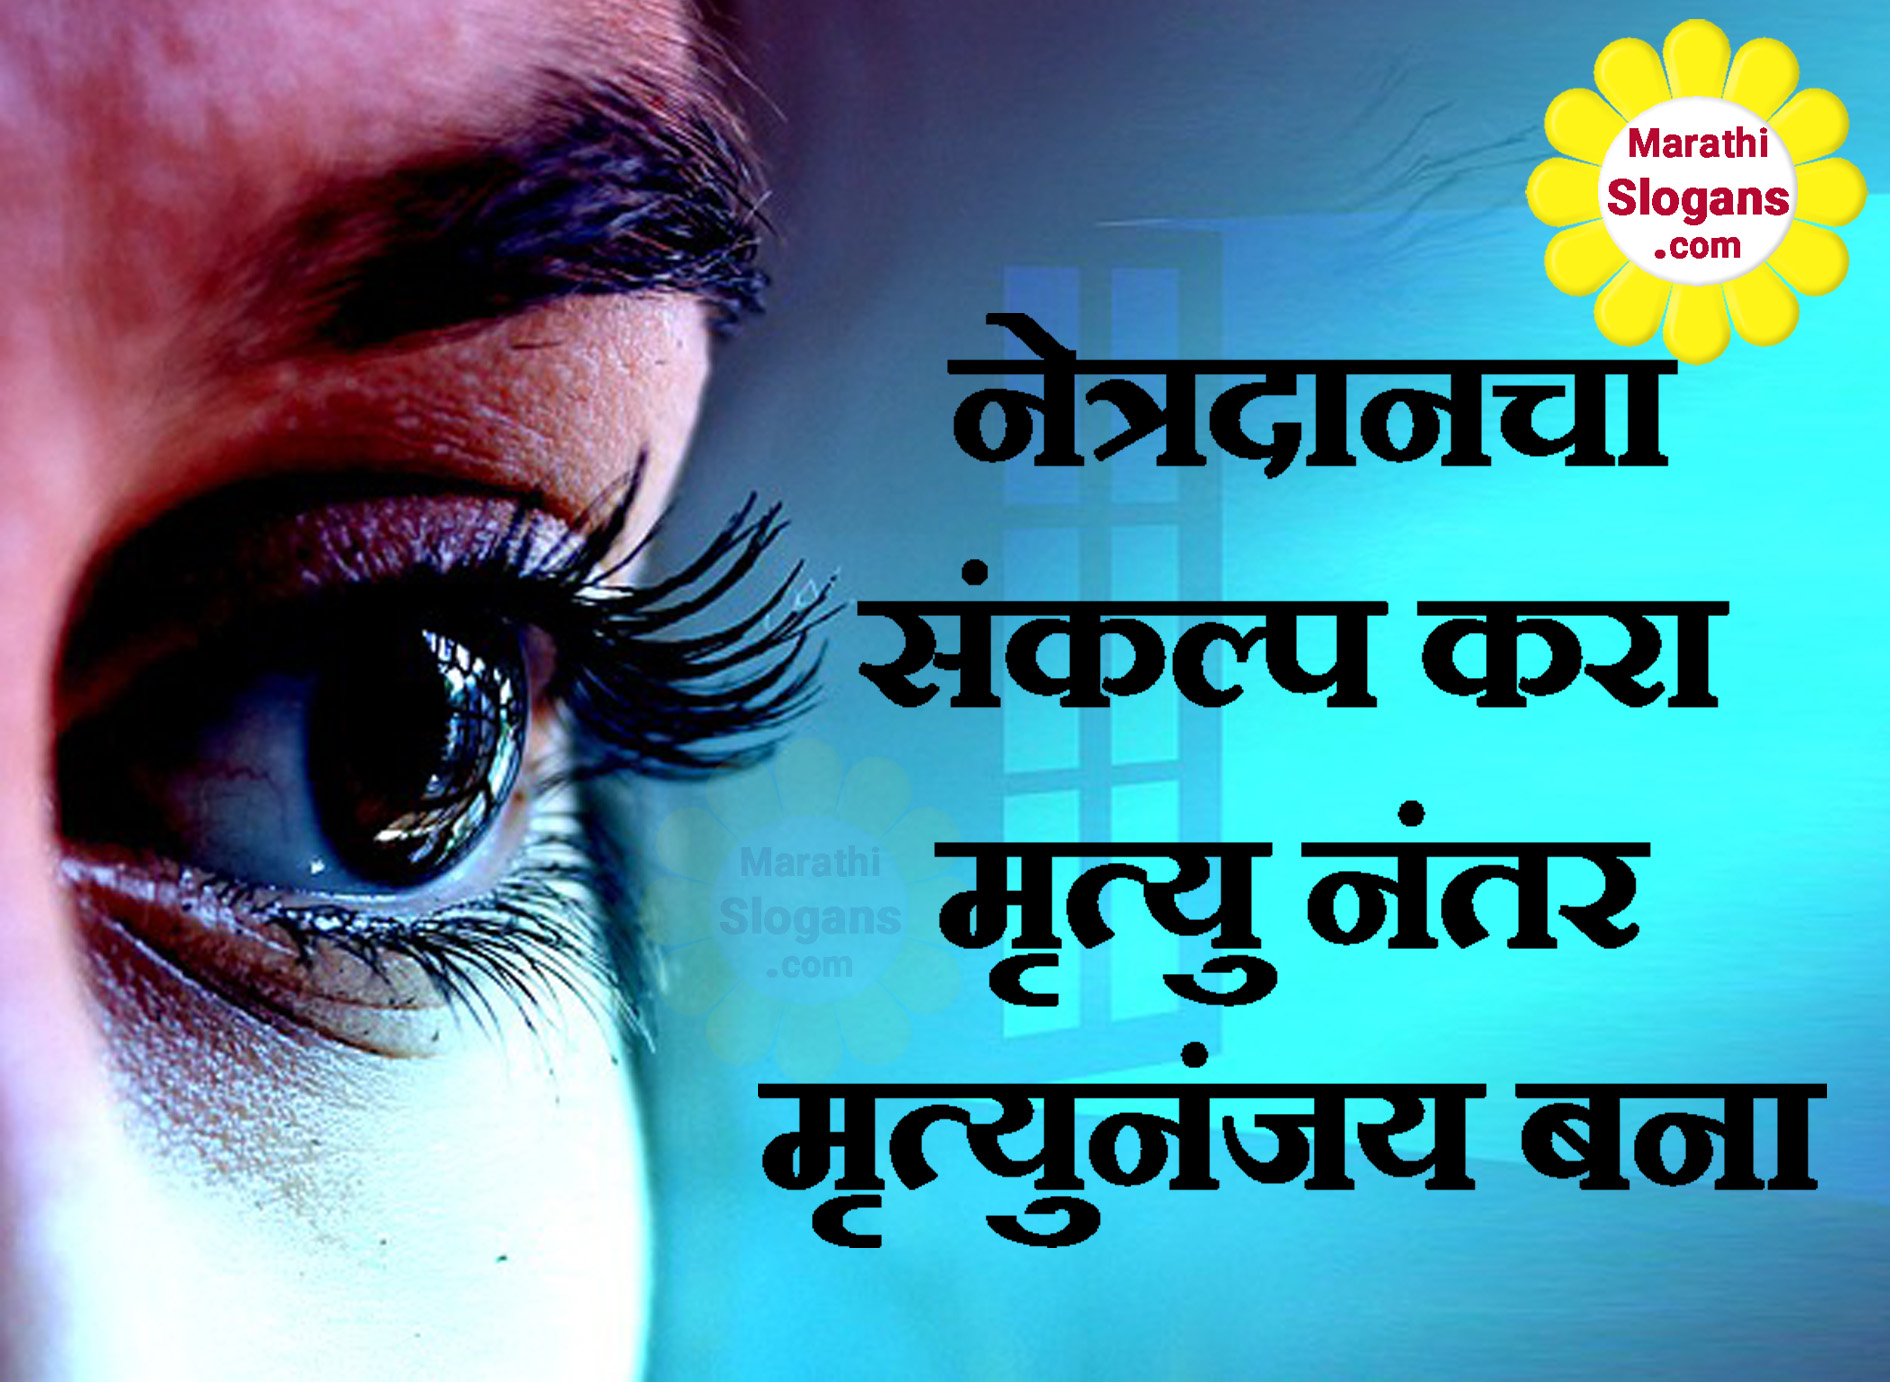 eye donation in marathi translation Play hundreds of free online trivia quizzes test your general knowledge in music, movies, history, television, sports, trivia, current.